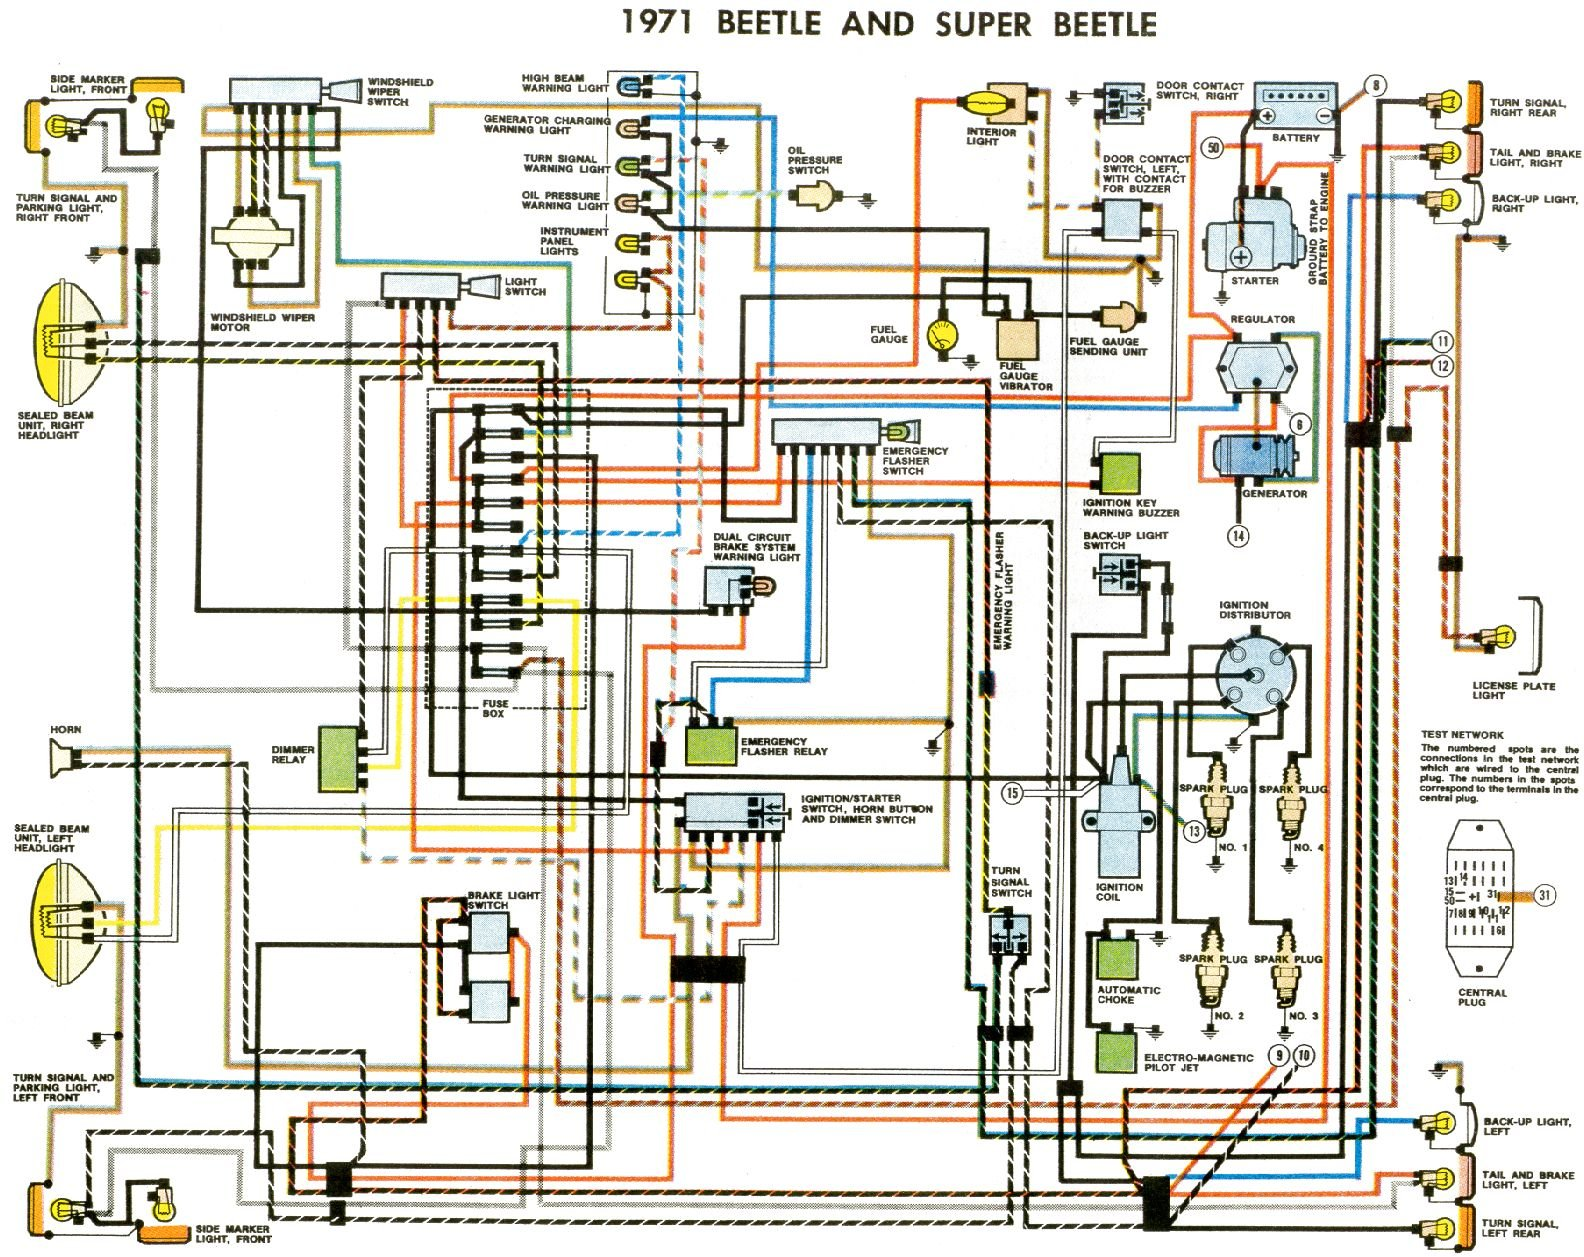 bug_71 1971 beetle wiring diagram (usa) thegoldenbug com 1973 vw wiring diagram at pacquiaovsvargaslive.co